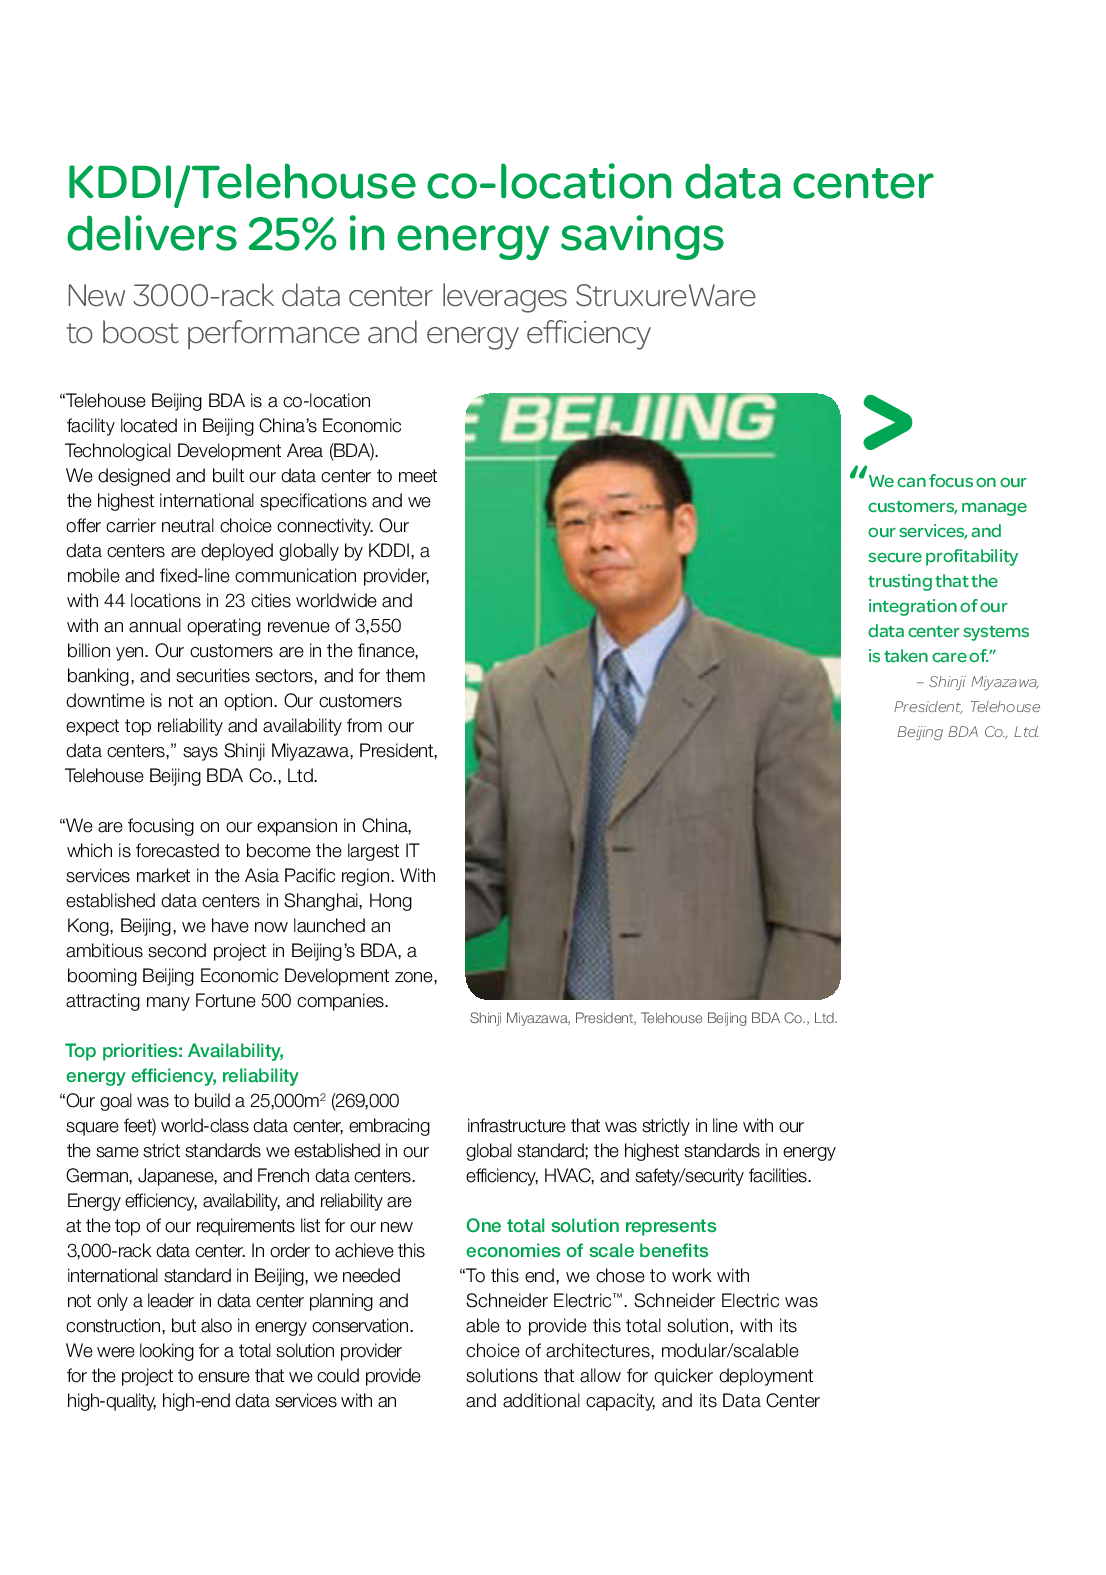 KDDI/Telehouse co-location data center delivers 25% in energy savings